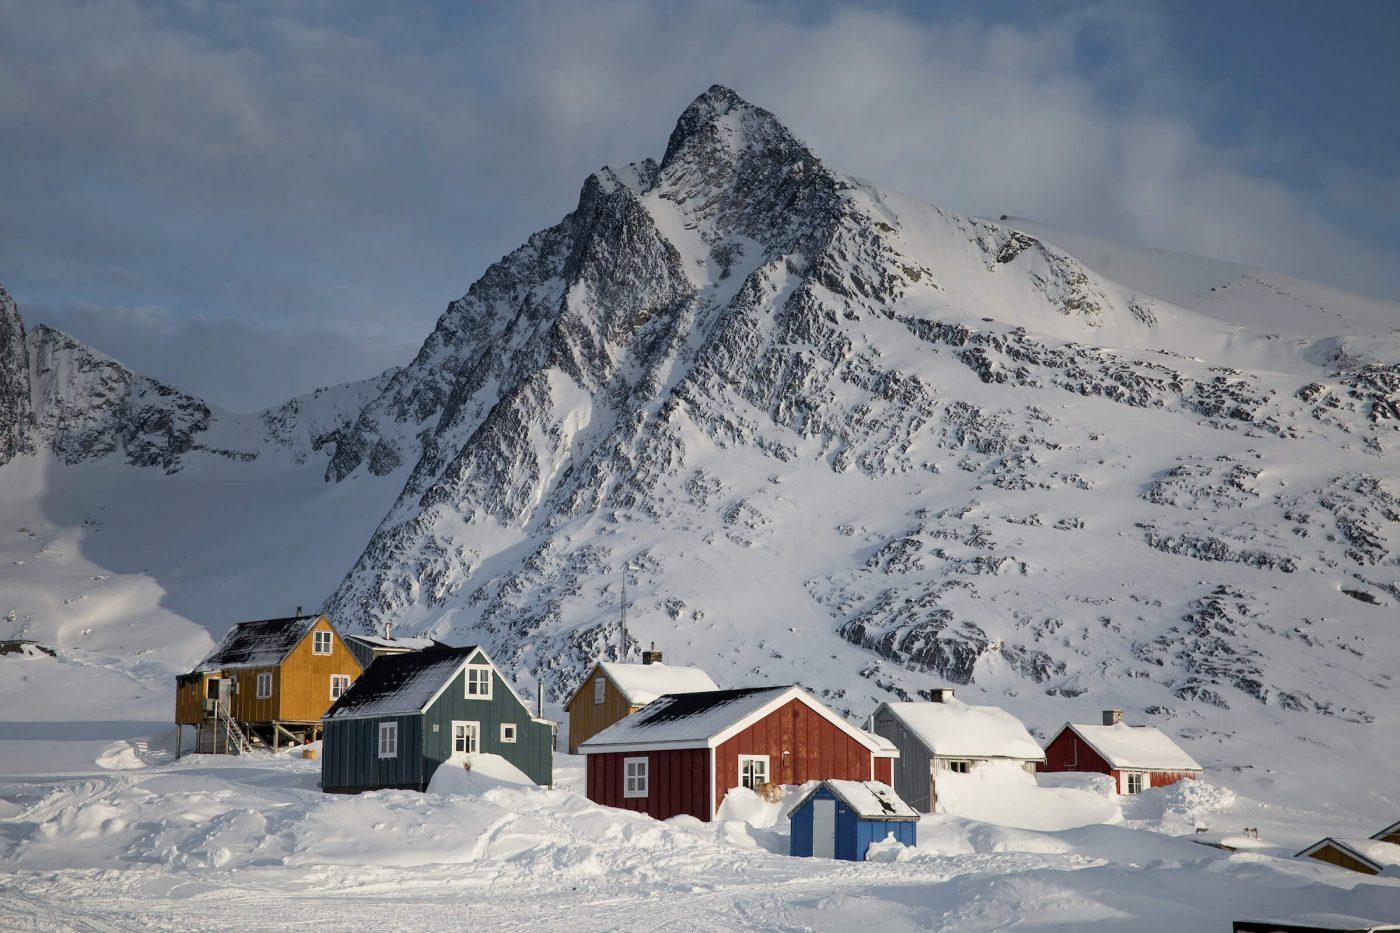 Snow-covered houses in Kuummiut, East Greenland. Photo by Mads Pihl